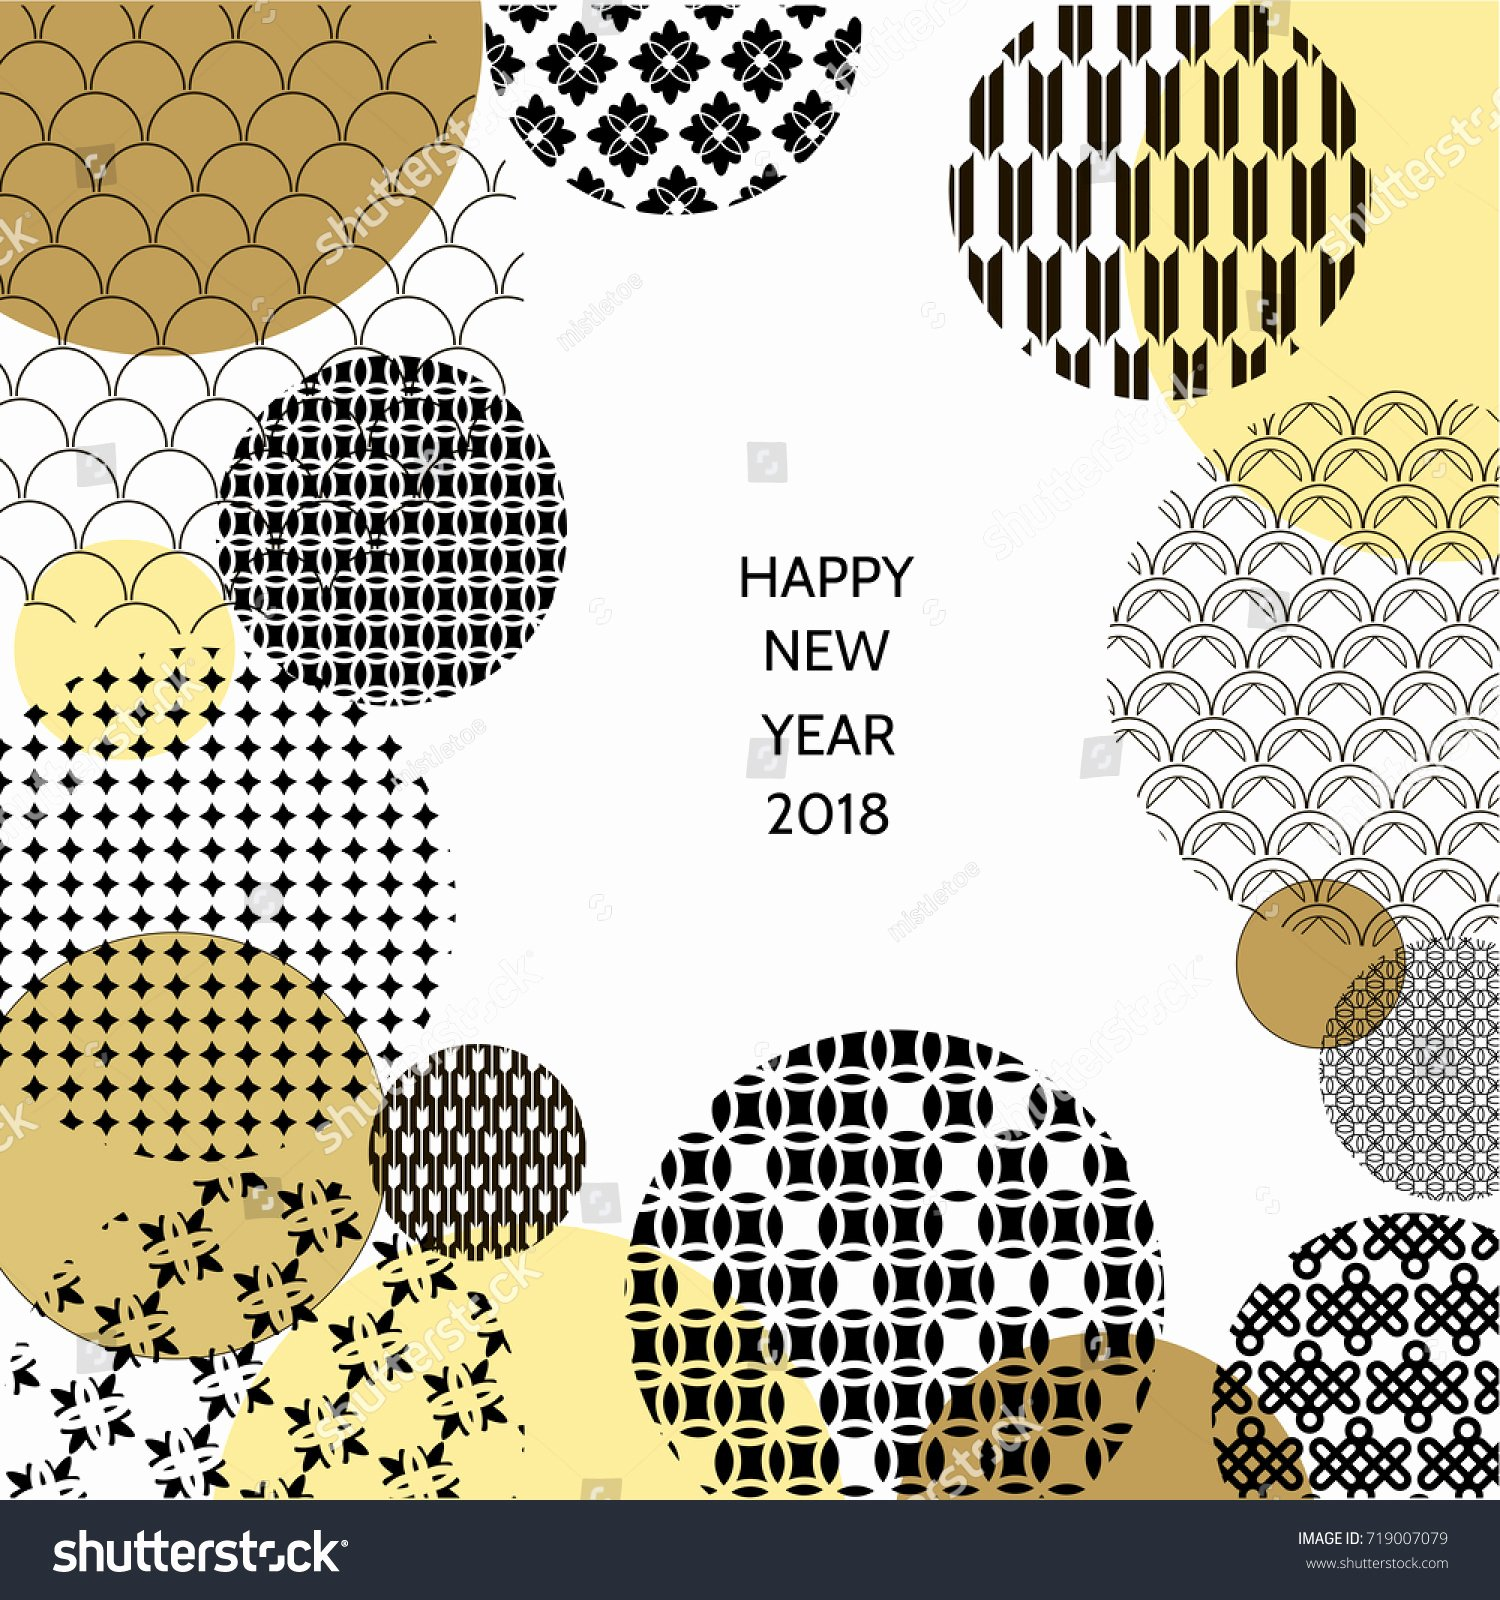 New Year Card Template New Happy New Year 2018 Template Greeting Stock Vector